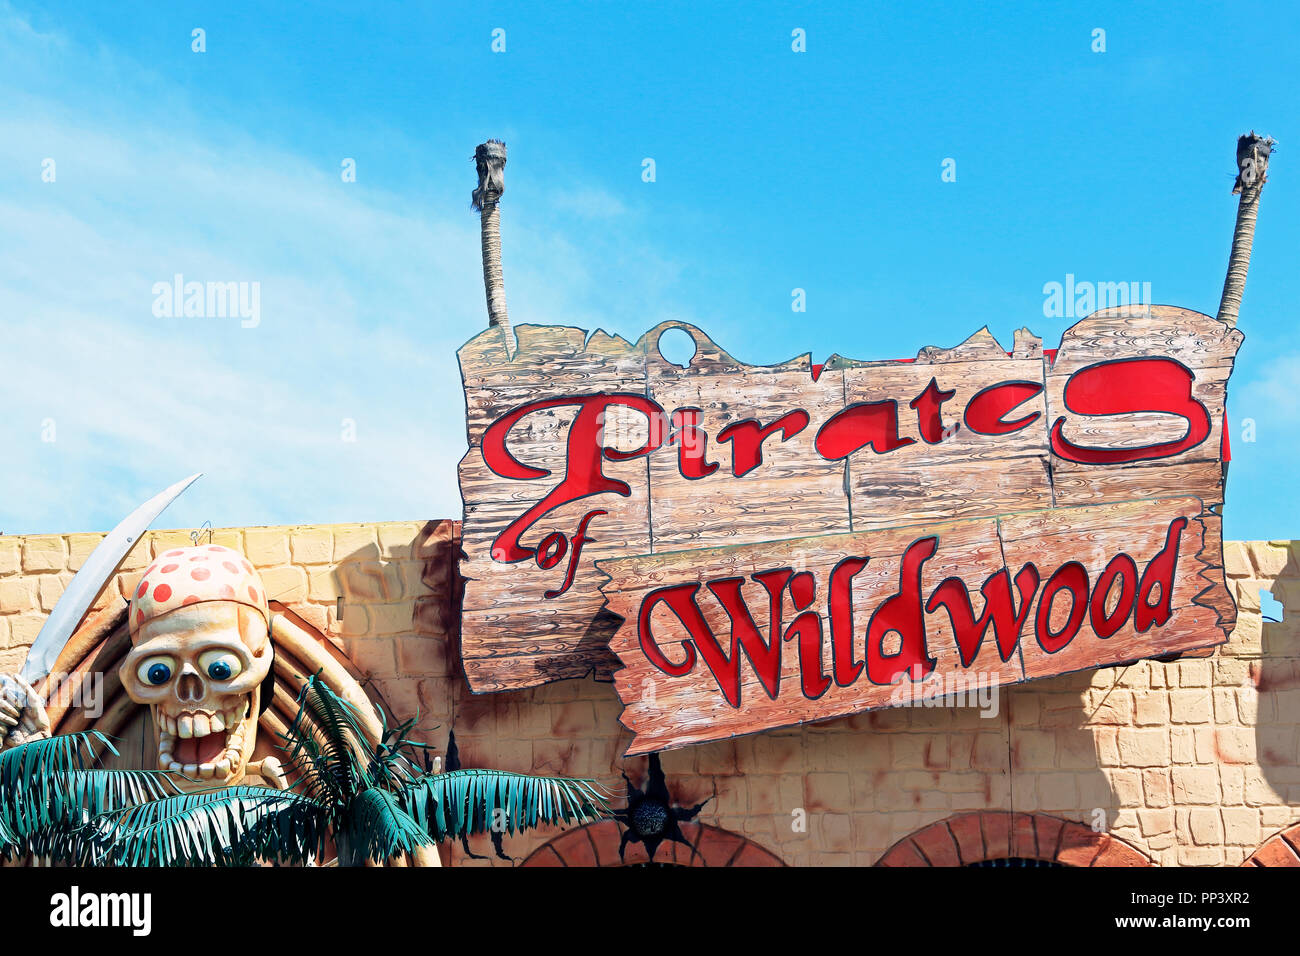 Pirates of WildwoodMorey's Piers, Wildwood, New Jersey, USA - Stock Image